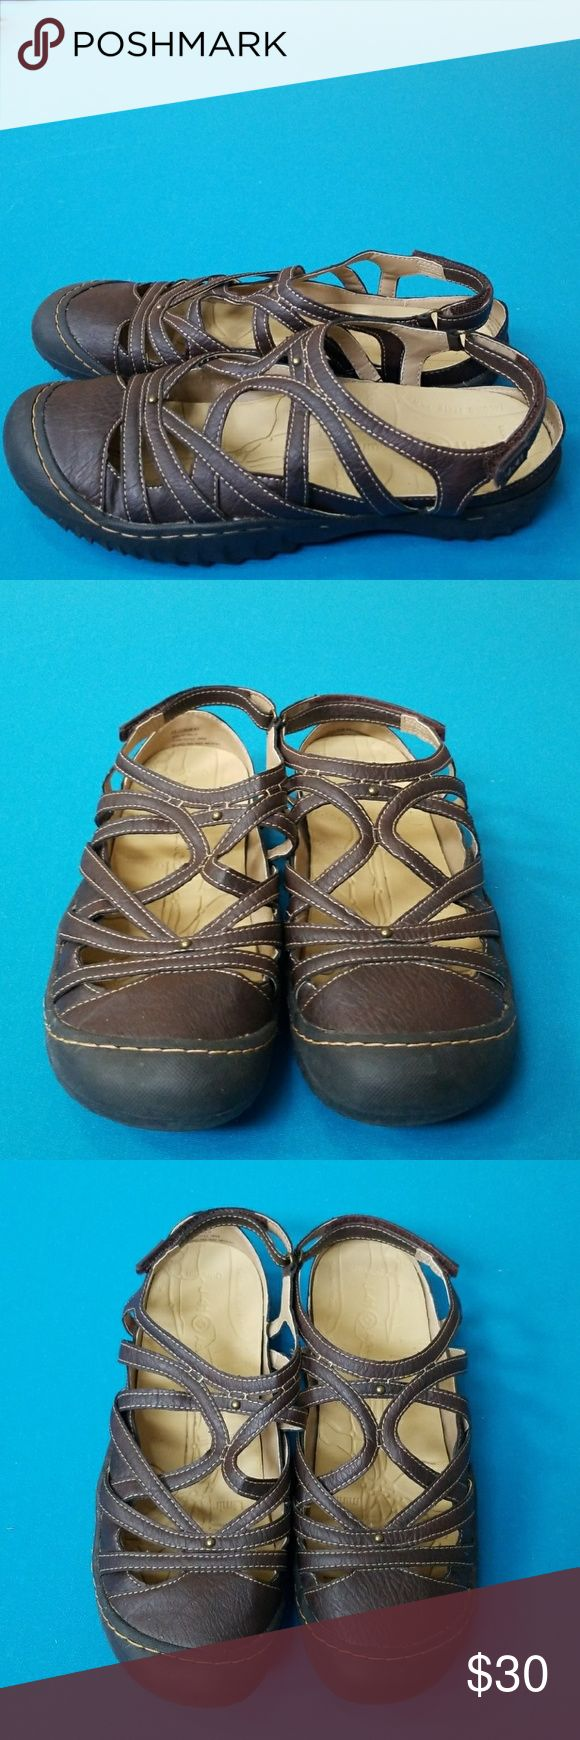 J-41 Jeep engineered hiking water SHOES WOMENS 11 Excellent pre-owned condition.  Vegan/textile upper.  Size 11.  Jeep engineered sole traction J-41 Shoes Sandals